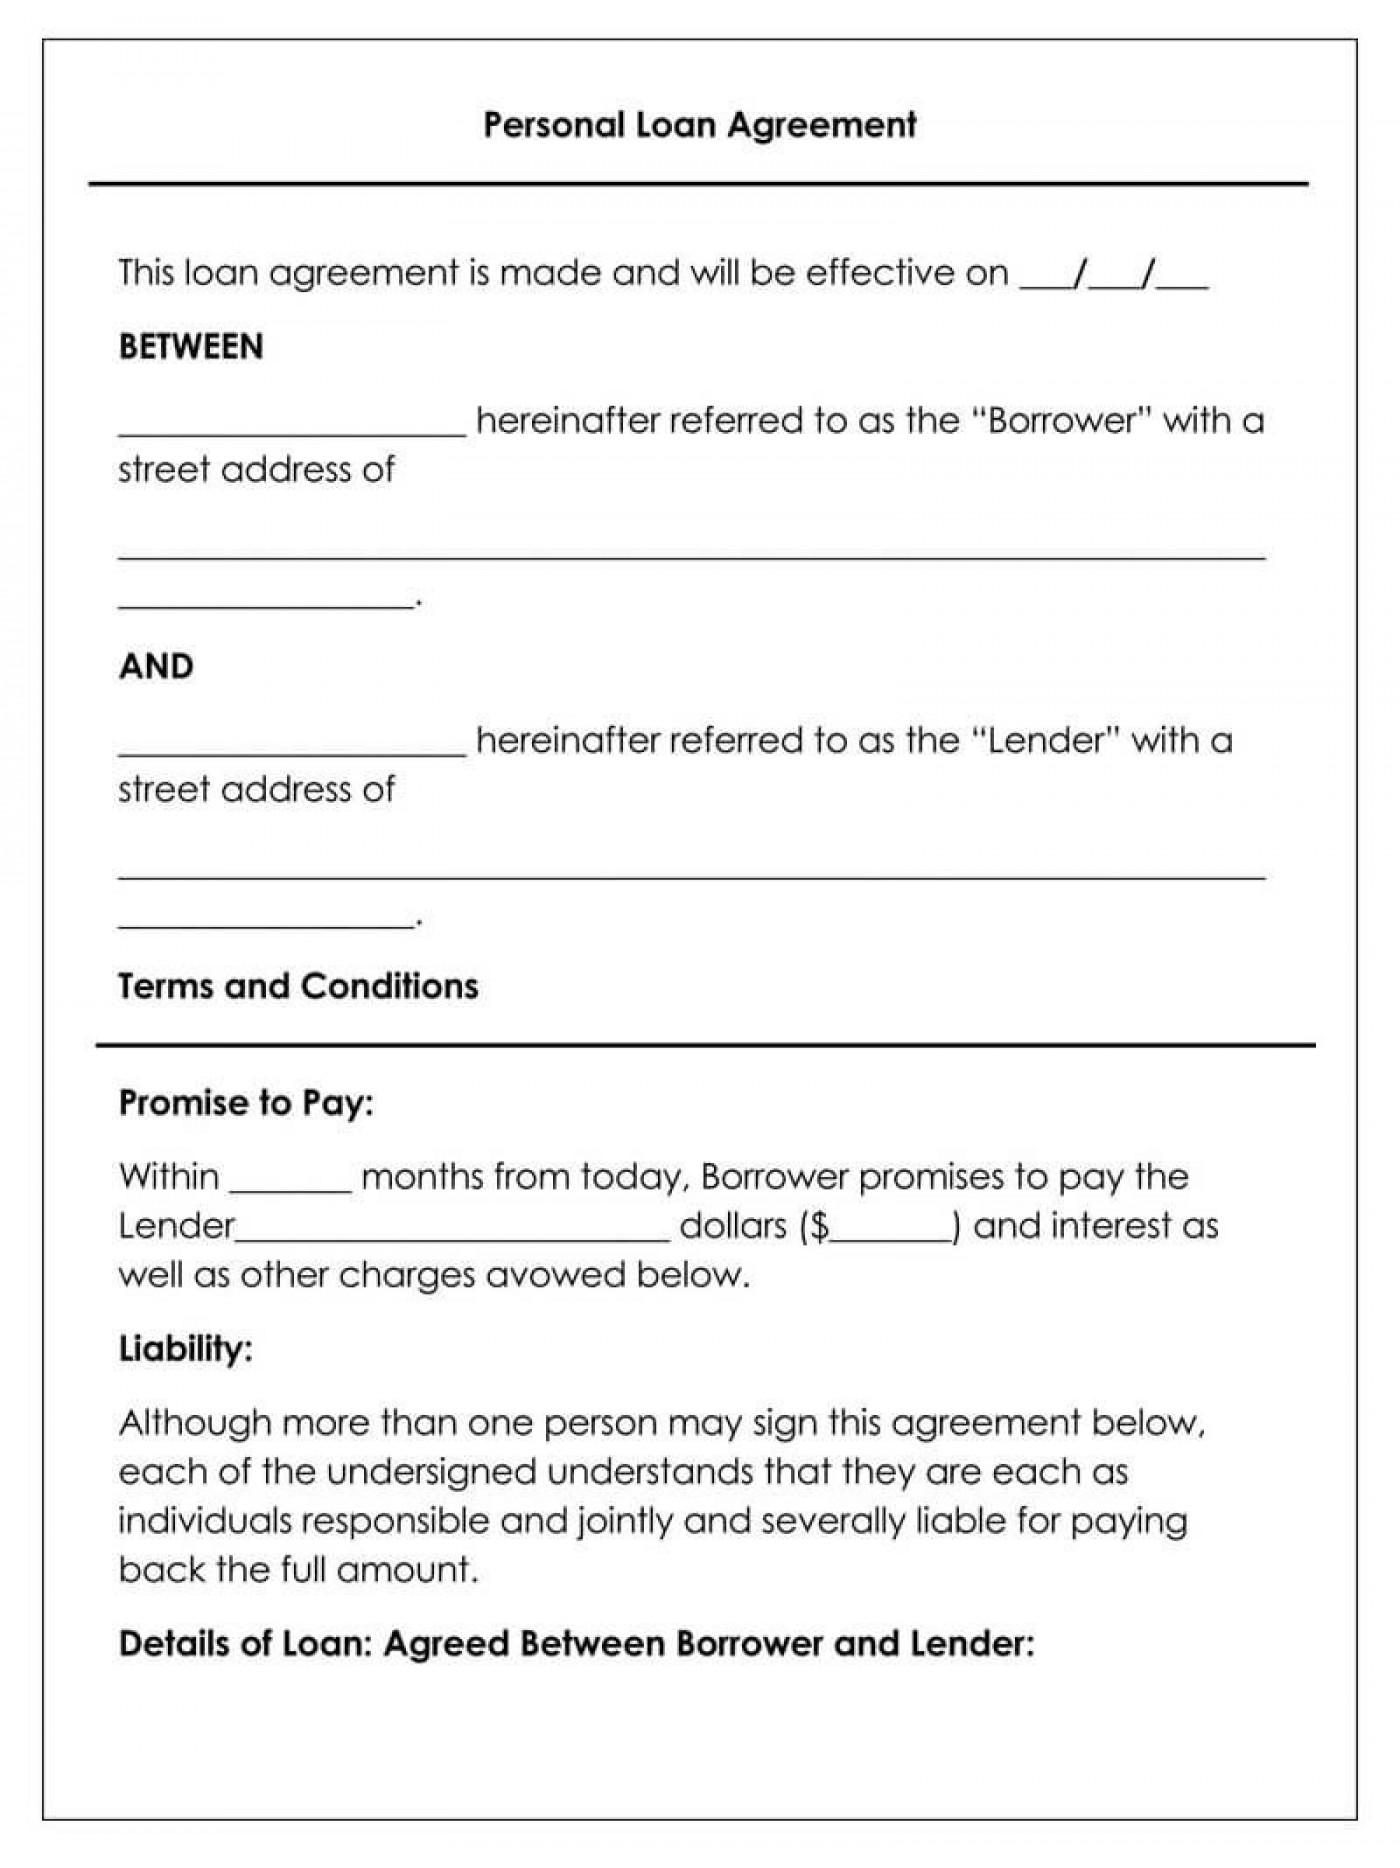 008 Fearsome Loan Agreement Template Free Image  Download Scotland Ontario Word1400